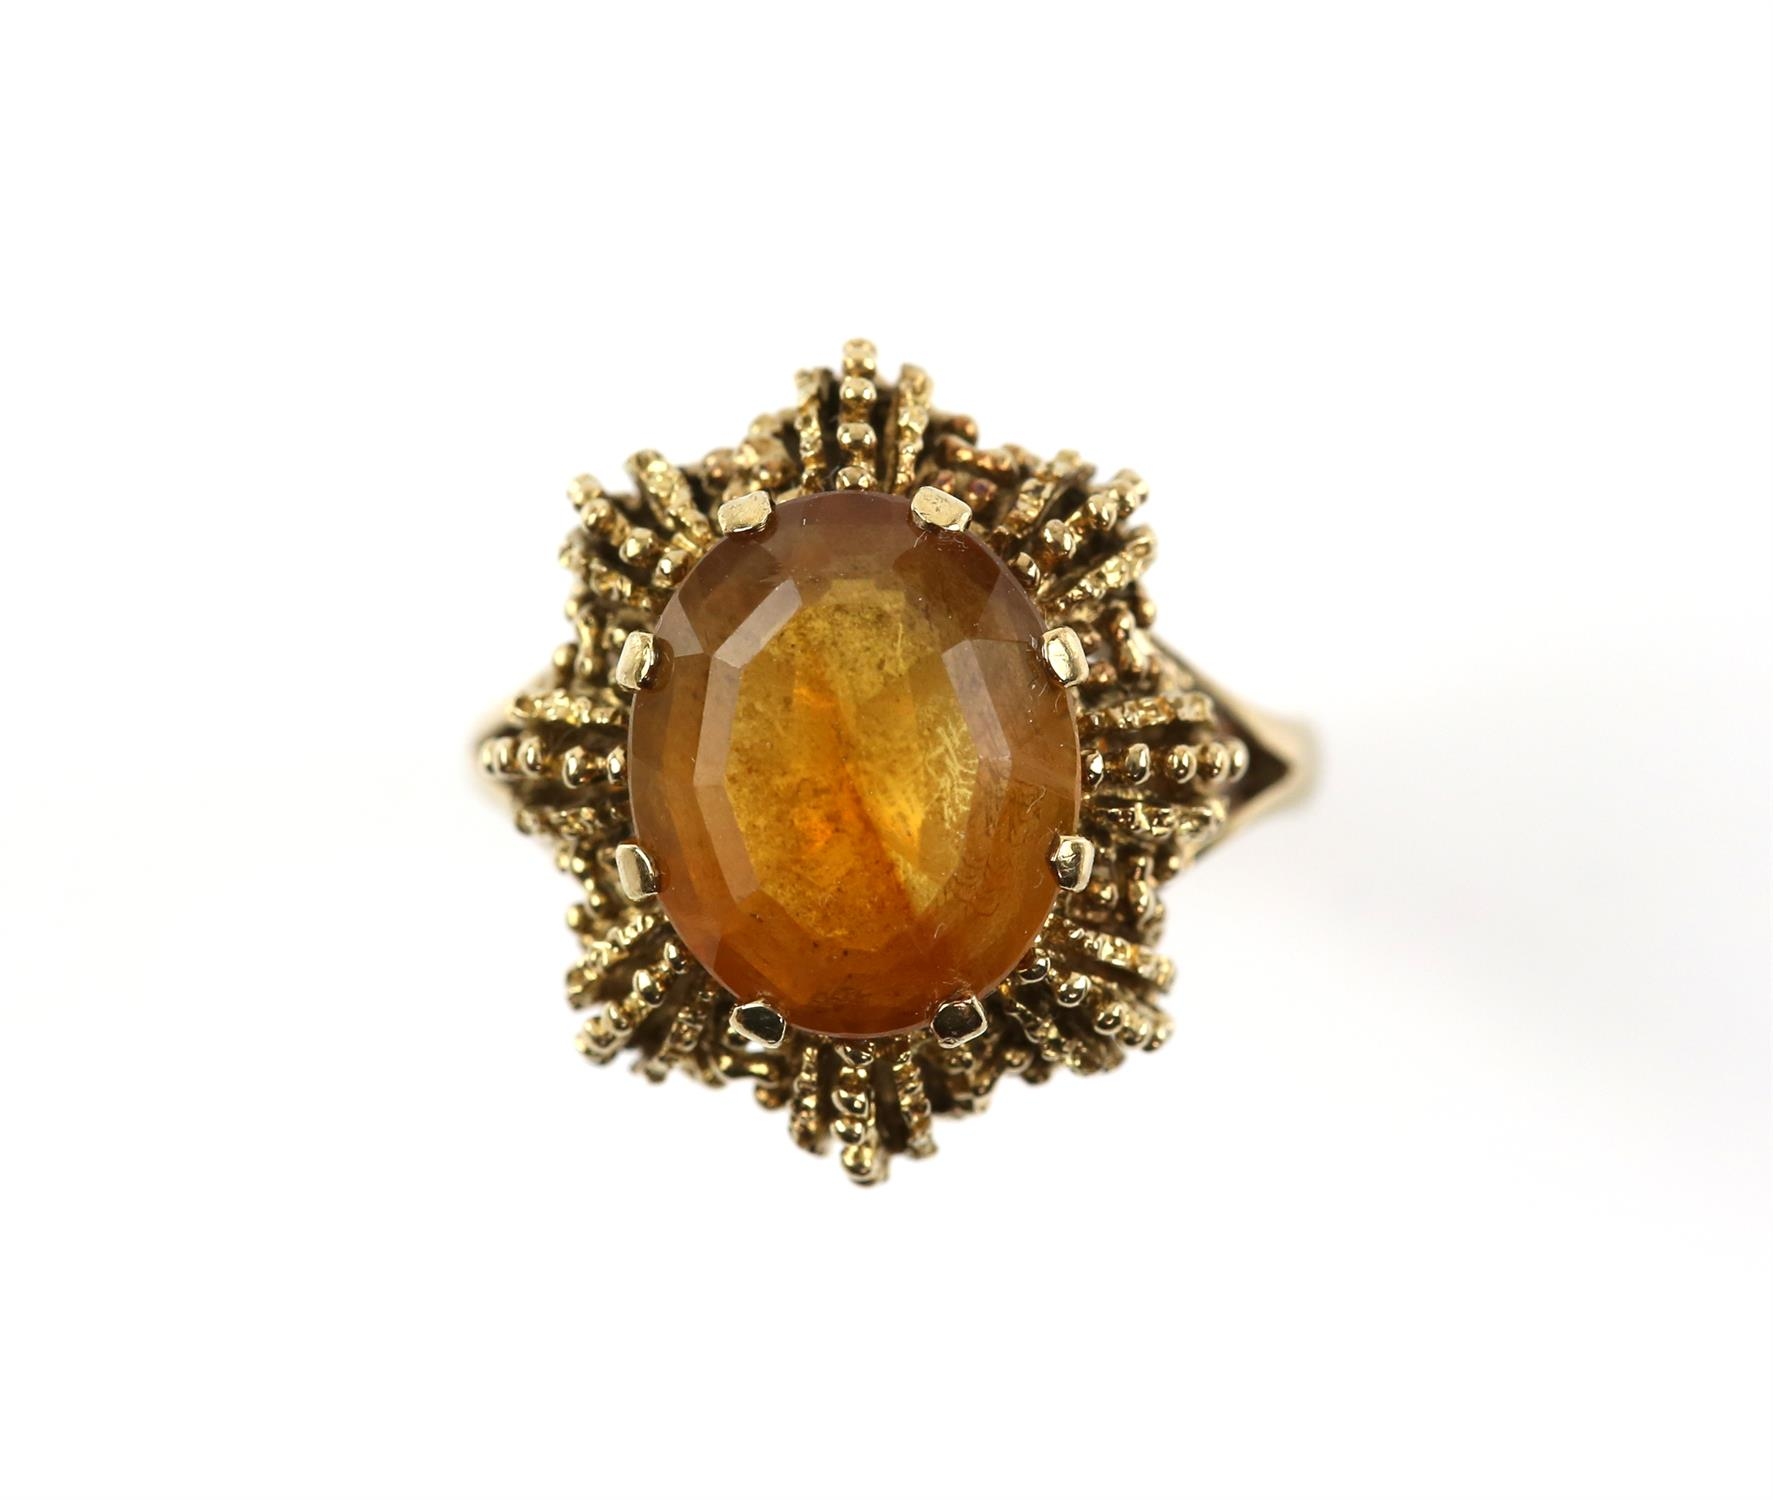 Vintage citrine ring, mixed cut citrine, measuring 12.1 x 10 mm, in a textured 9 ct mount,